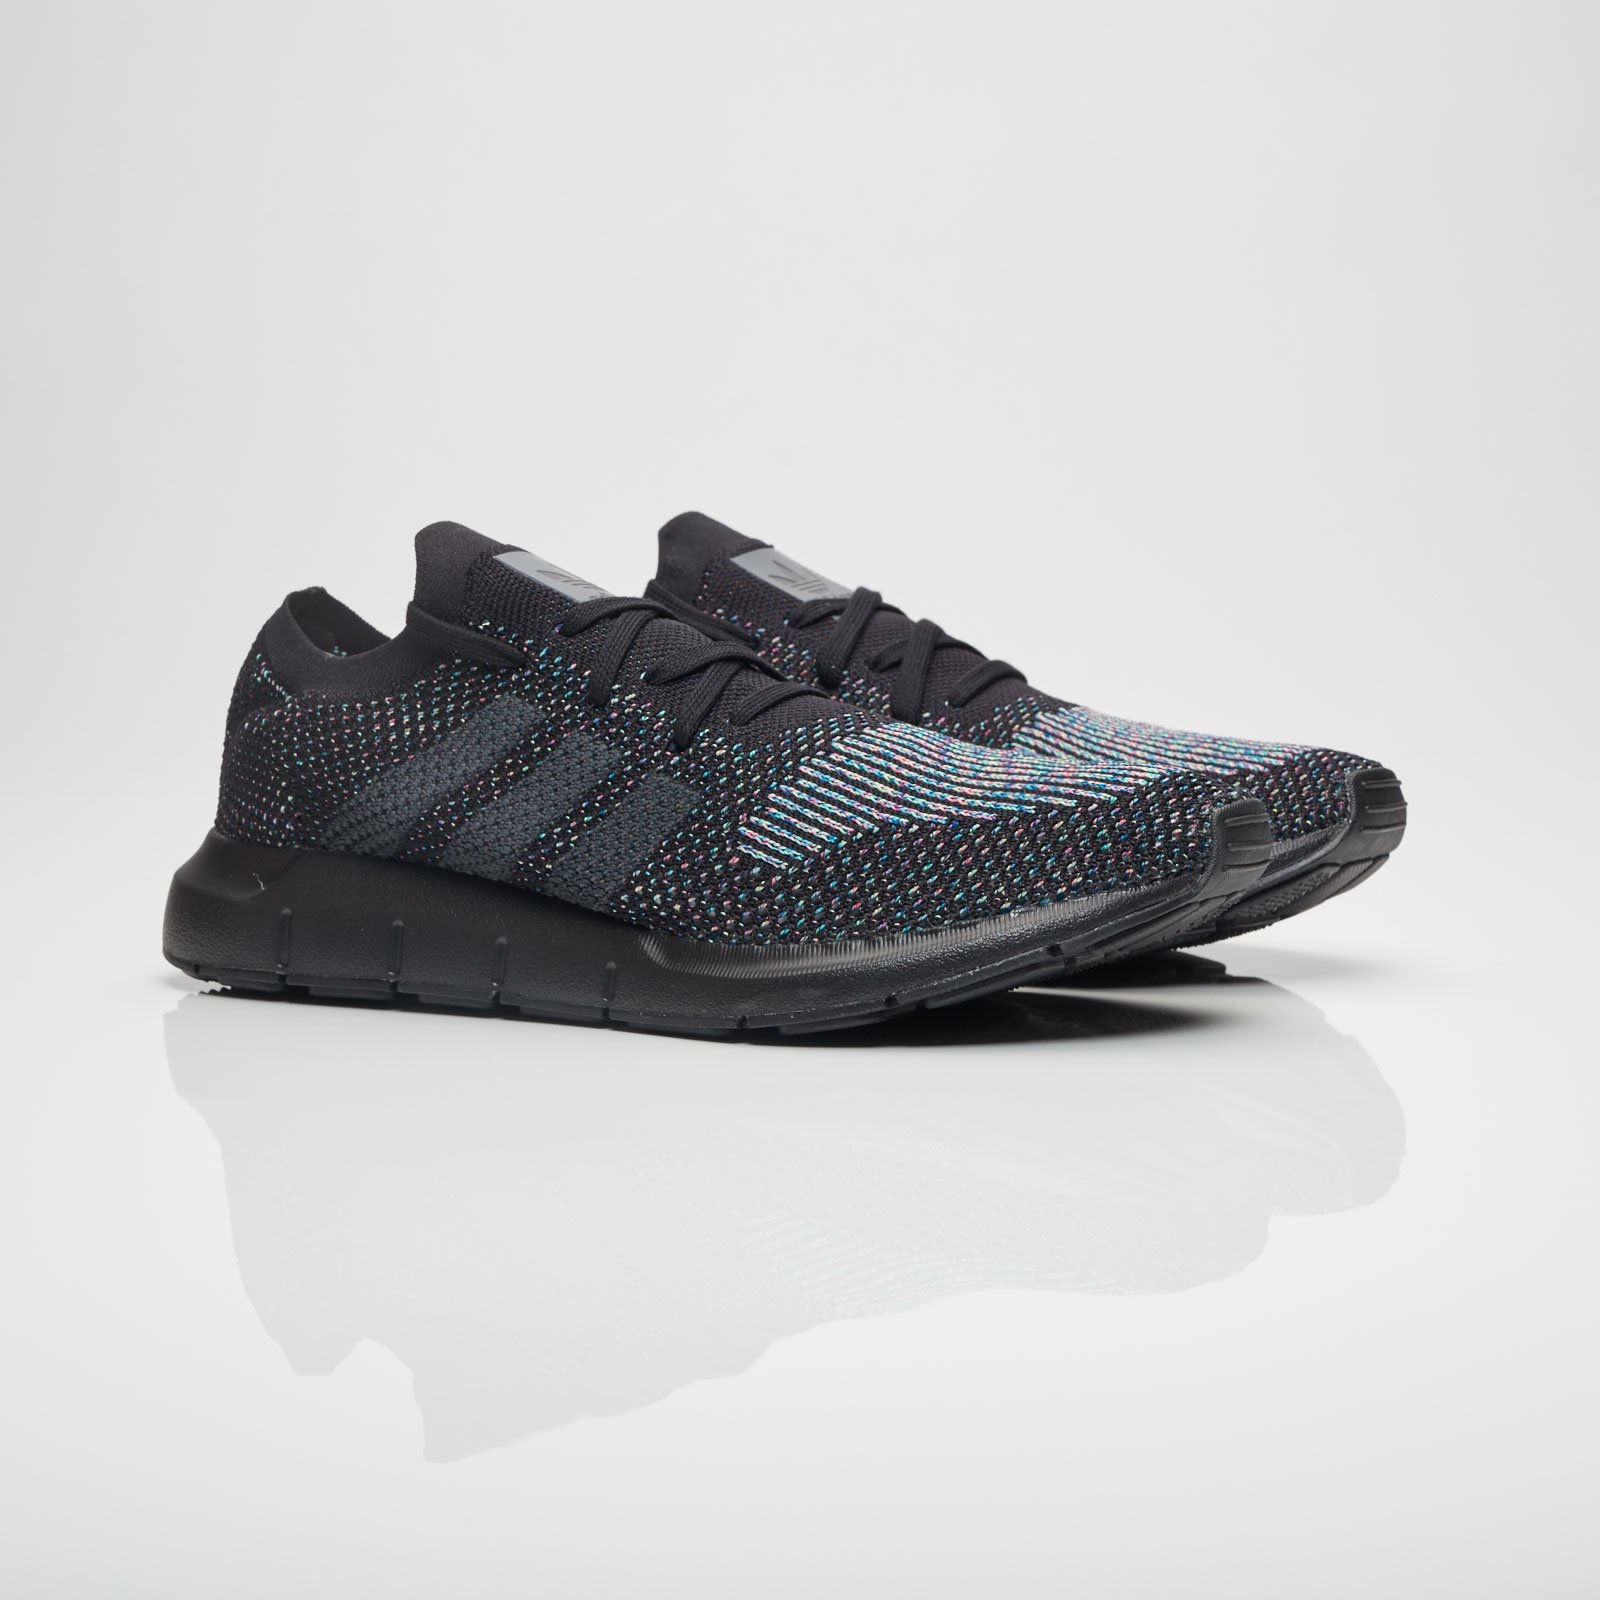 e7dfda8b1b4dd adidas Swift Run PK - Cg4127 - Sneakersnstuff